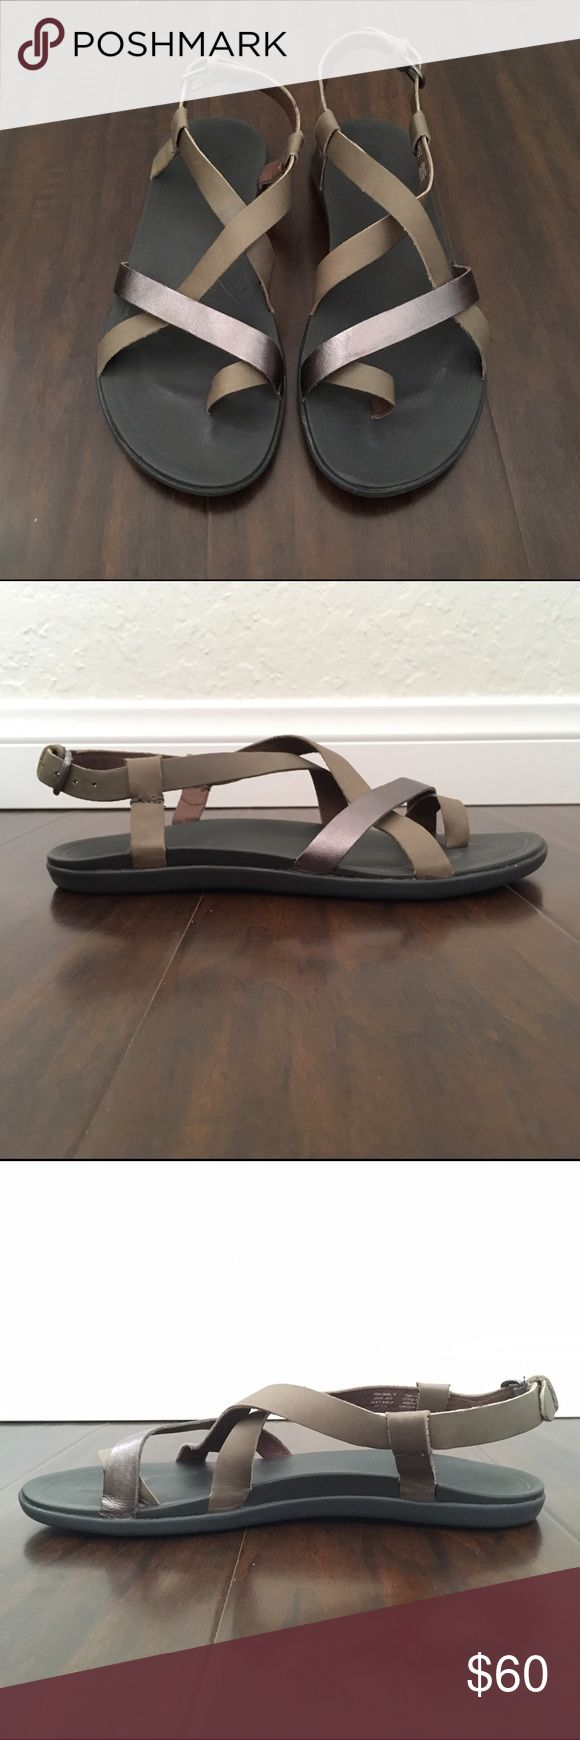 OluKai Upena sandals Worn just few times during a trip to Japan. Still selling at Nordstrom for full price. Last three images are stock photos. All offers accepted or countered! 😊 OluKai Shoes Sandals